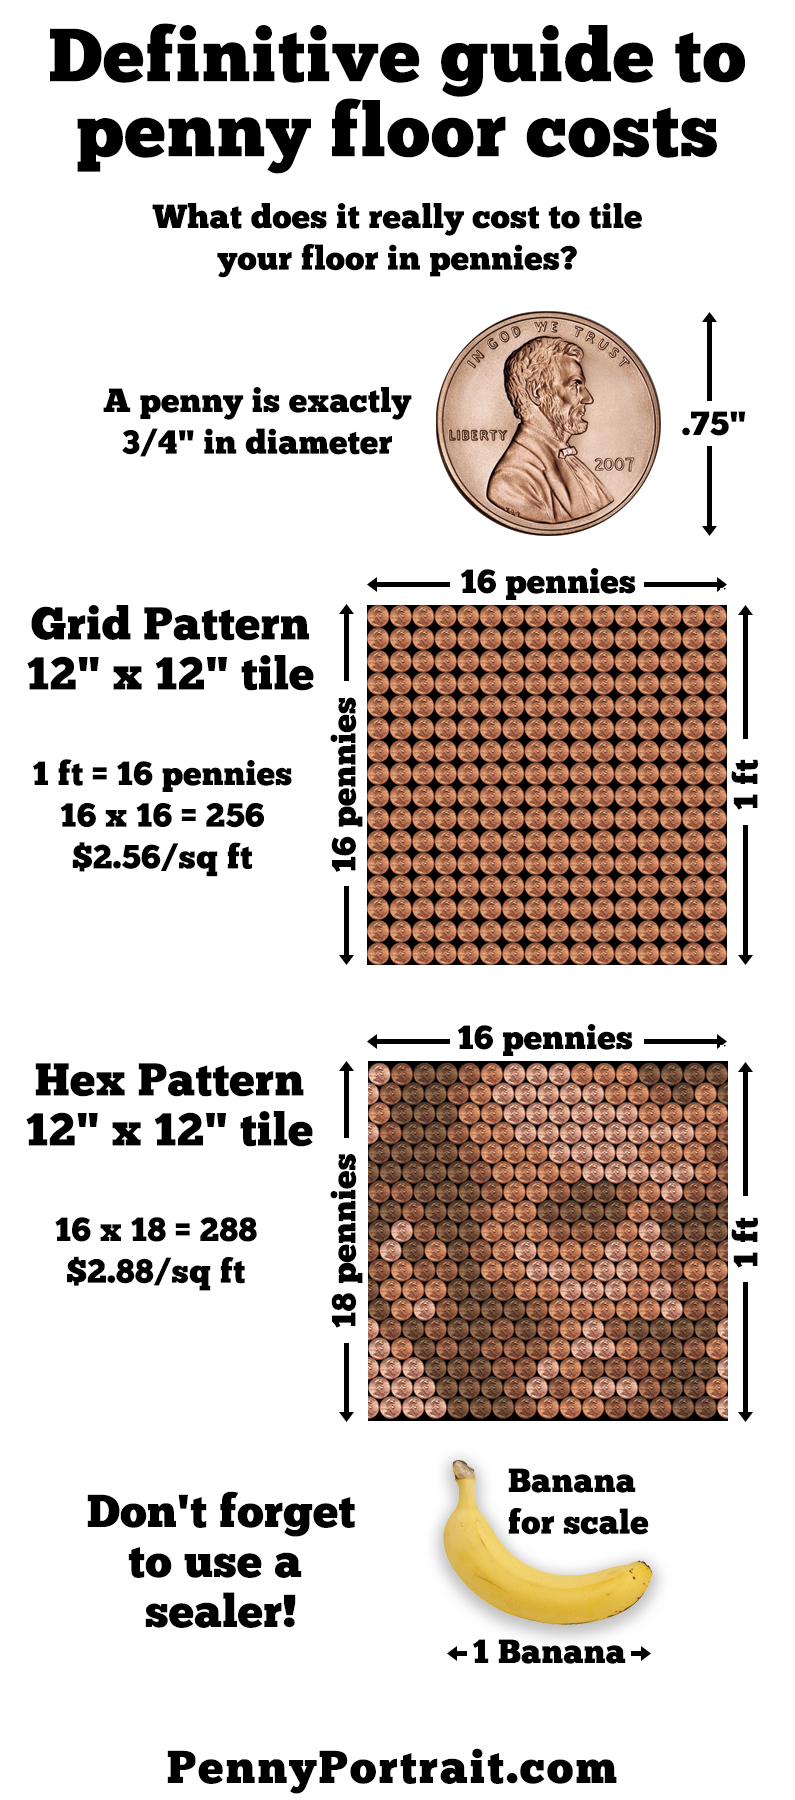 Definitive guide to penny floor costs infographic